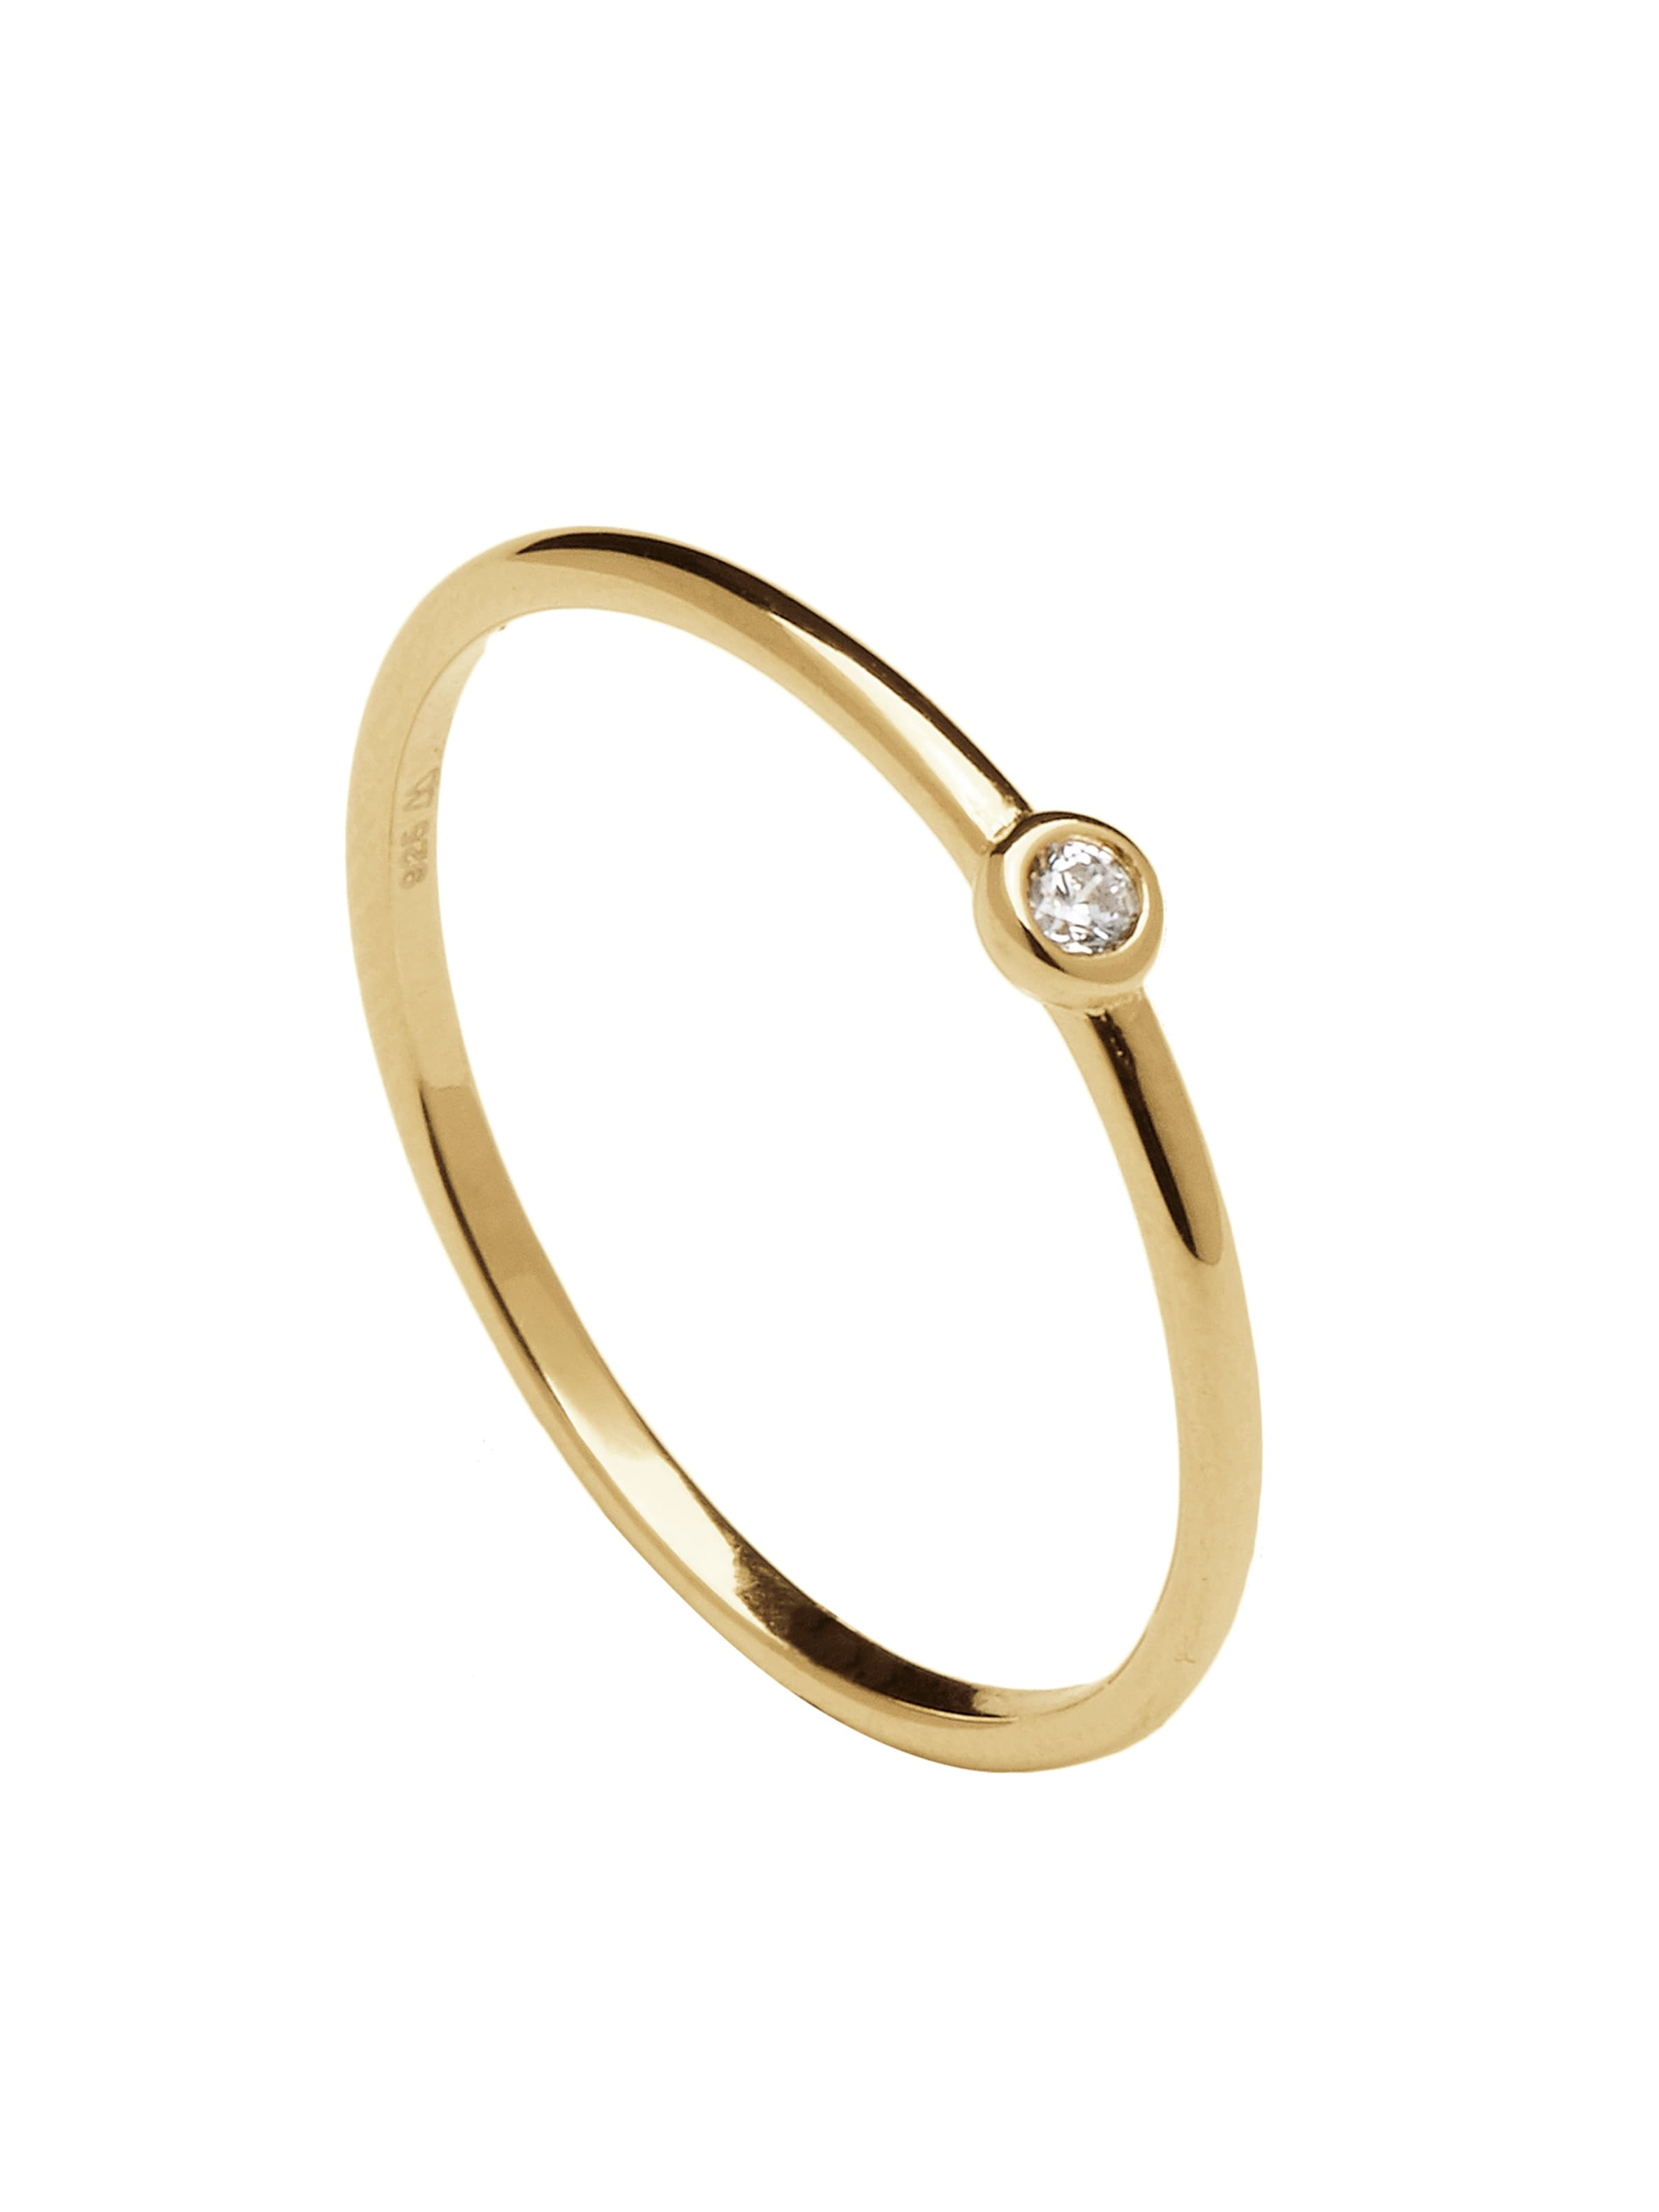 P Paola 'classic' In Gold Ring D wv8N0mn